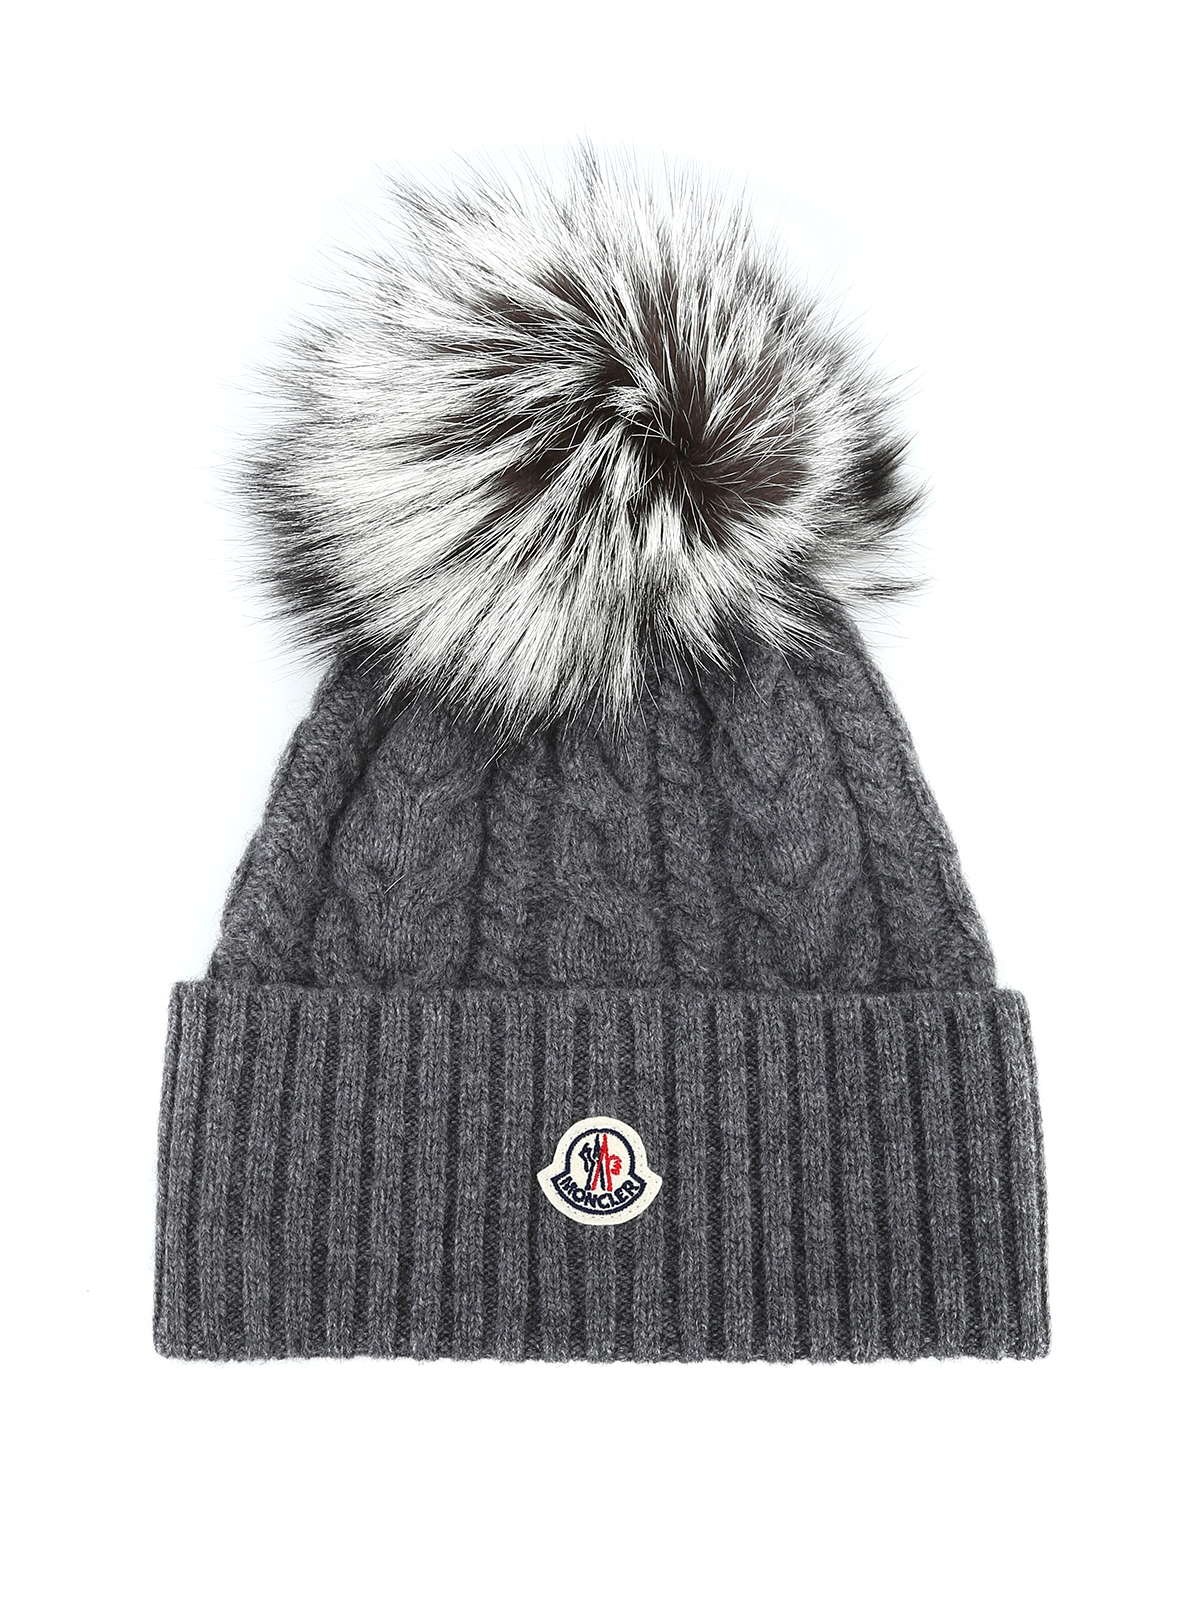 MONCLER: beanies - Fur pompom grey cable knit beanie